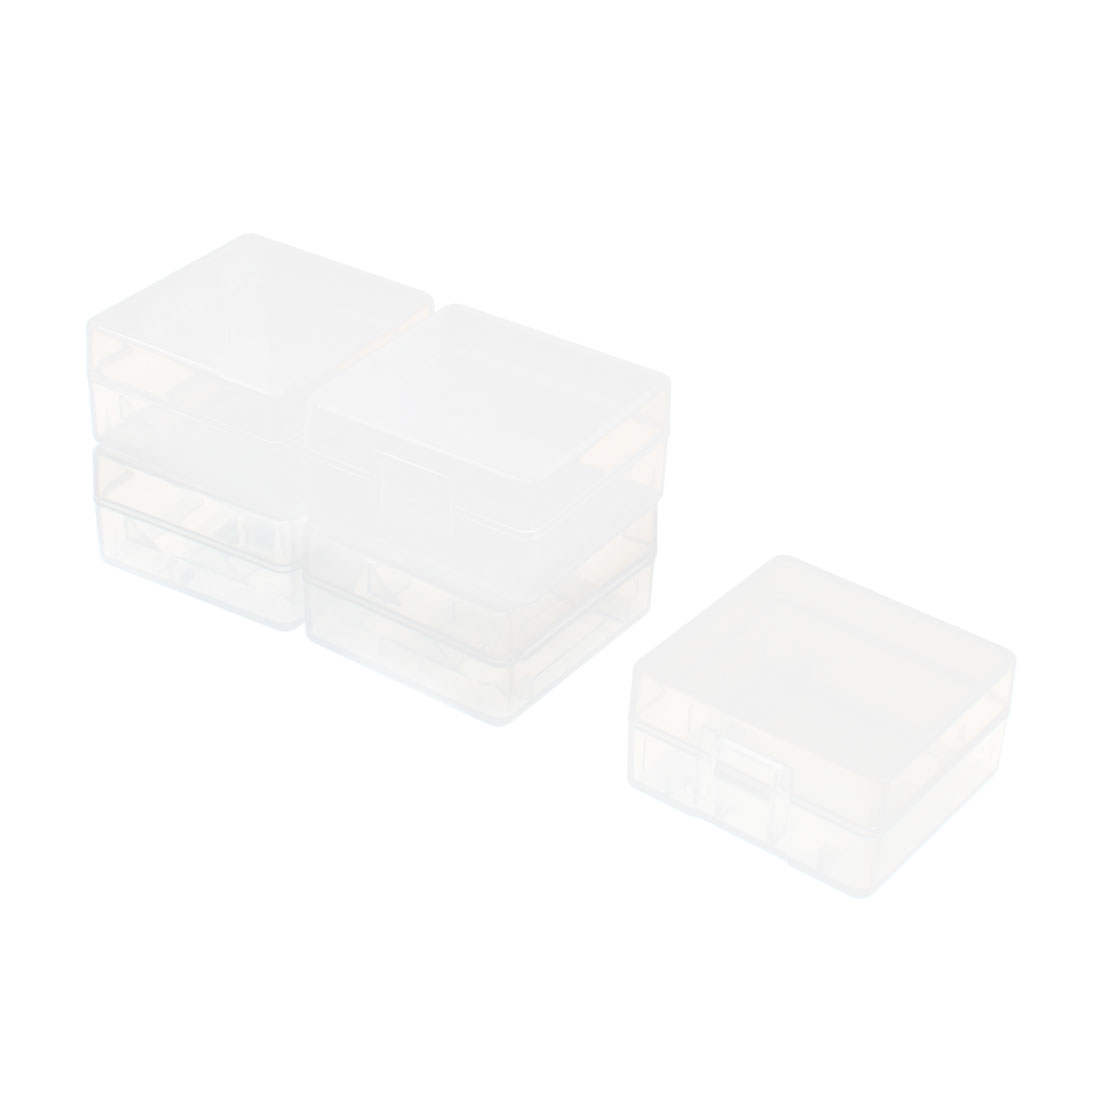 Plastic 2 Capacity C 18350 Battery Holder Case Storage Box Clear 5 Pcs